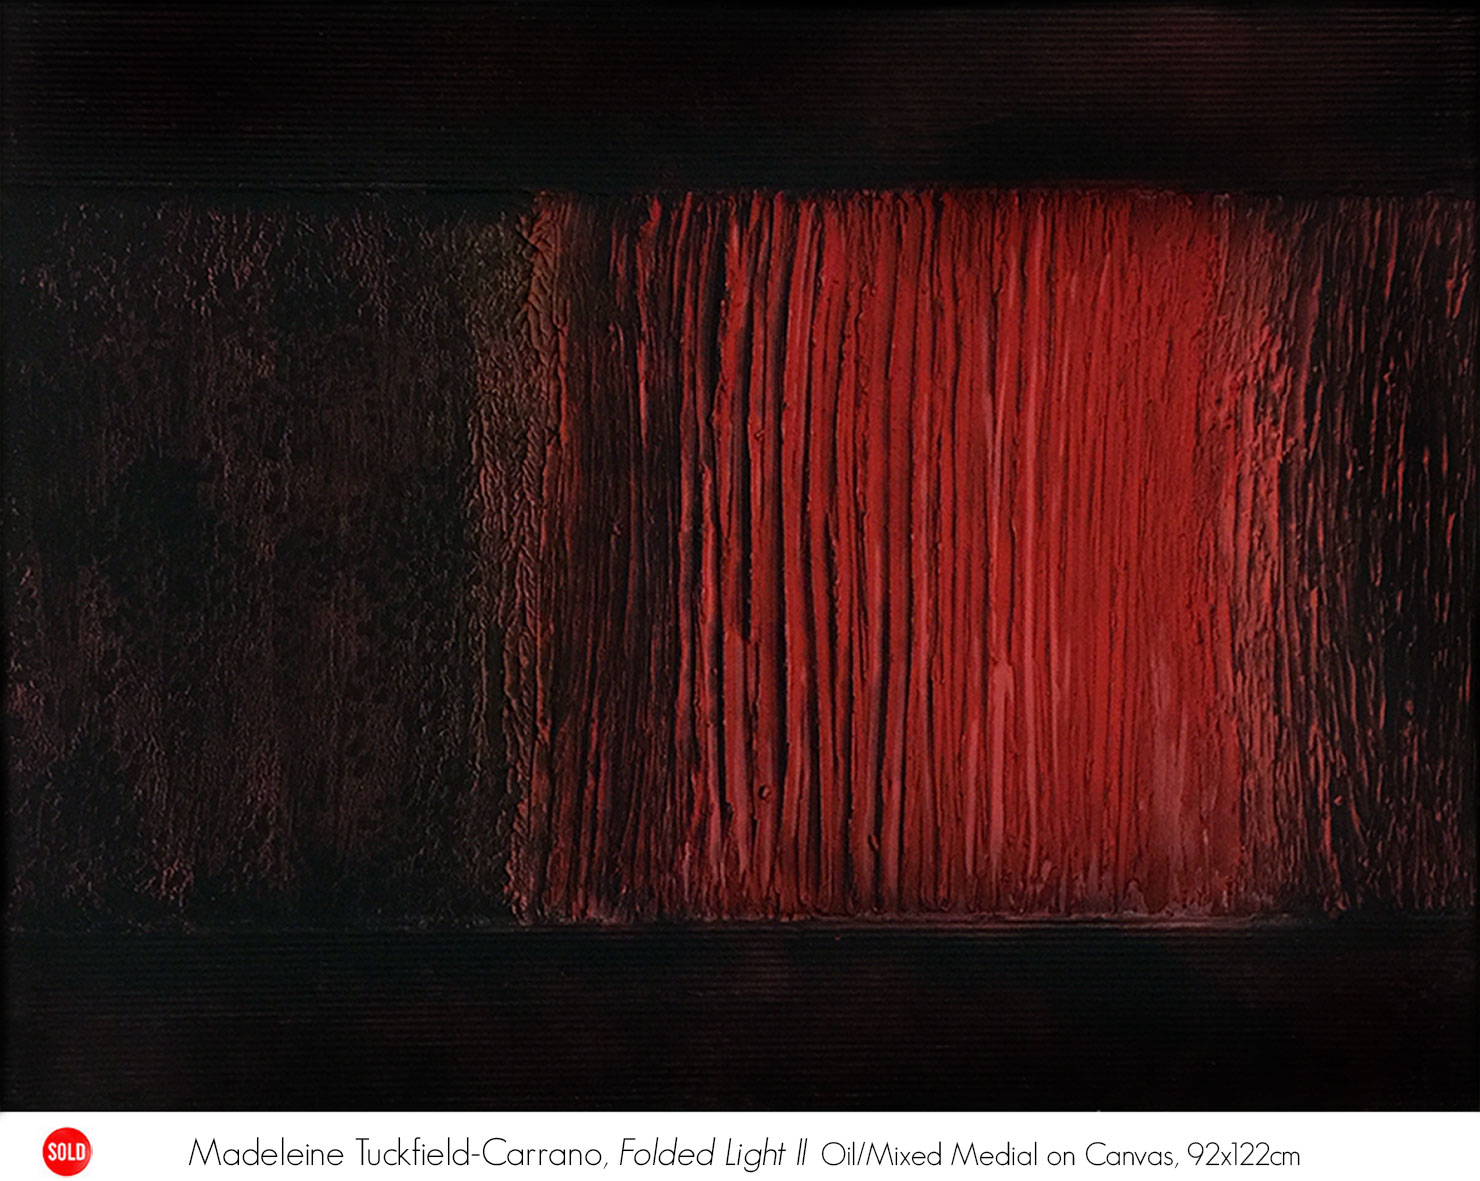 Madeleine Tuckfield-Carrano: Solo Exhibition Gallery One, Artsite Galleries, 02 -24 September 2017